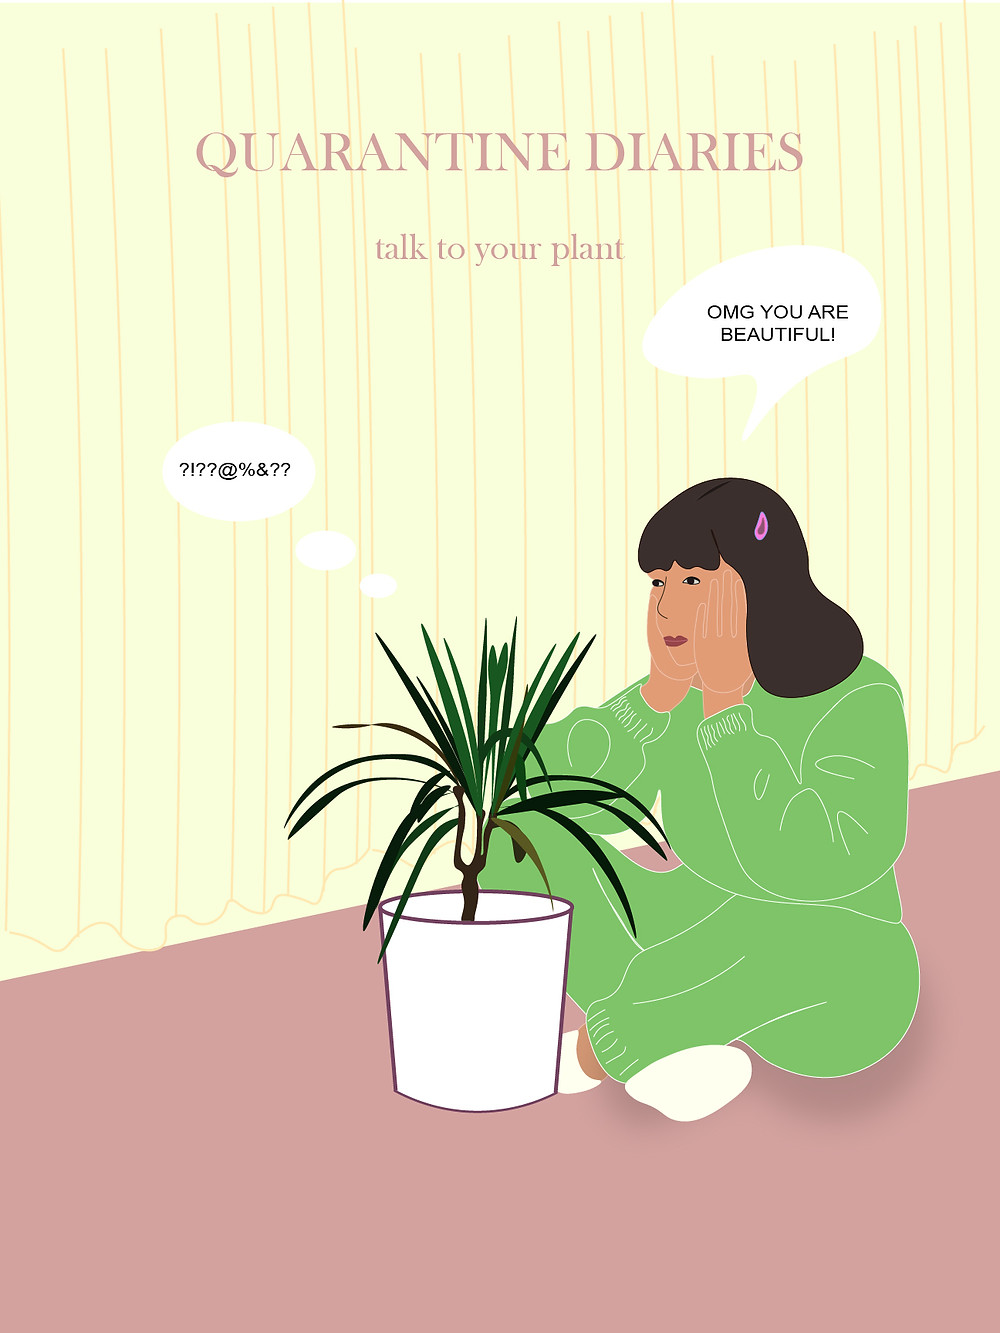 a digital illustration from the Quarantine Diaries schowing a girl talking to a plant